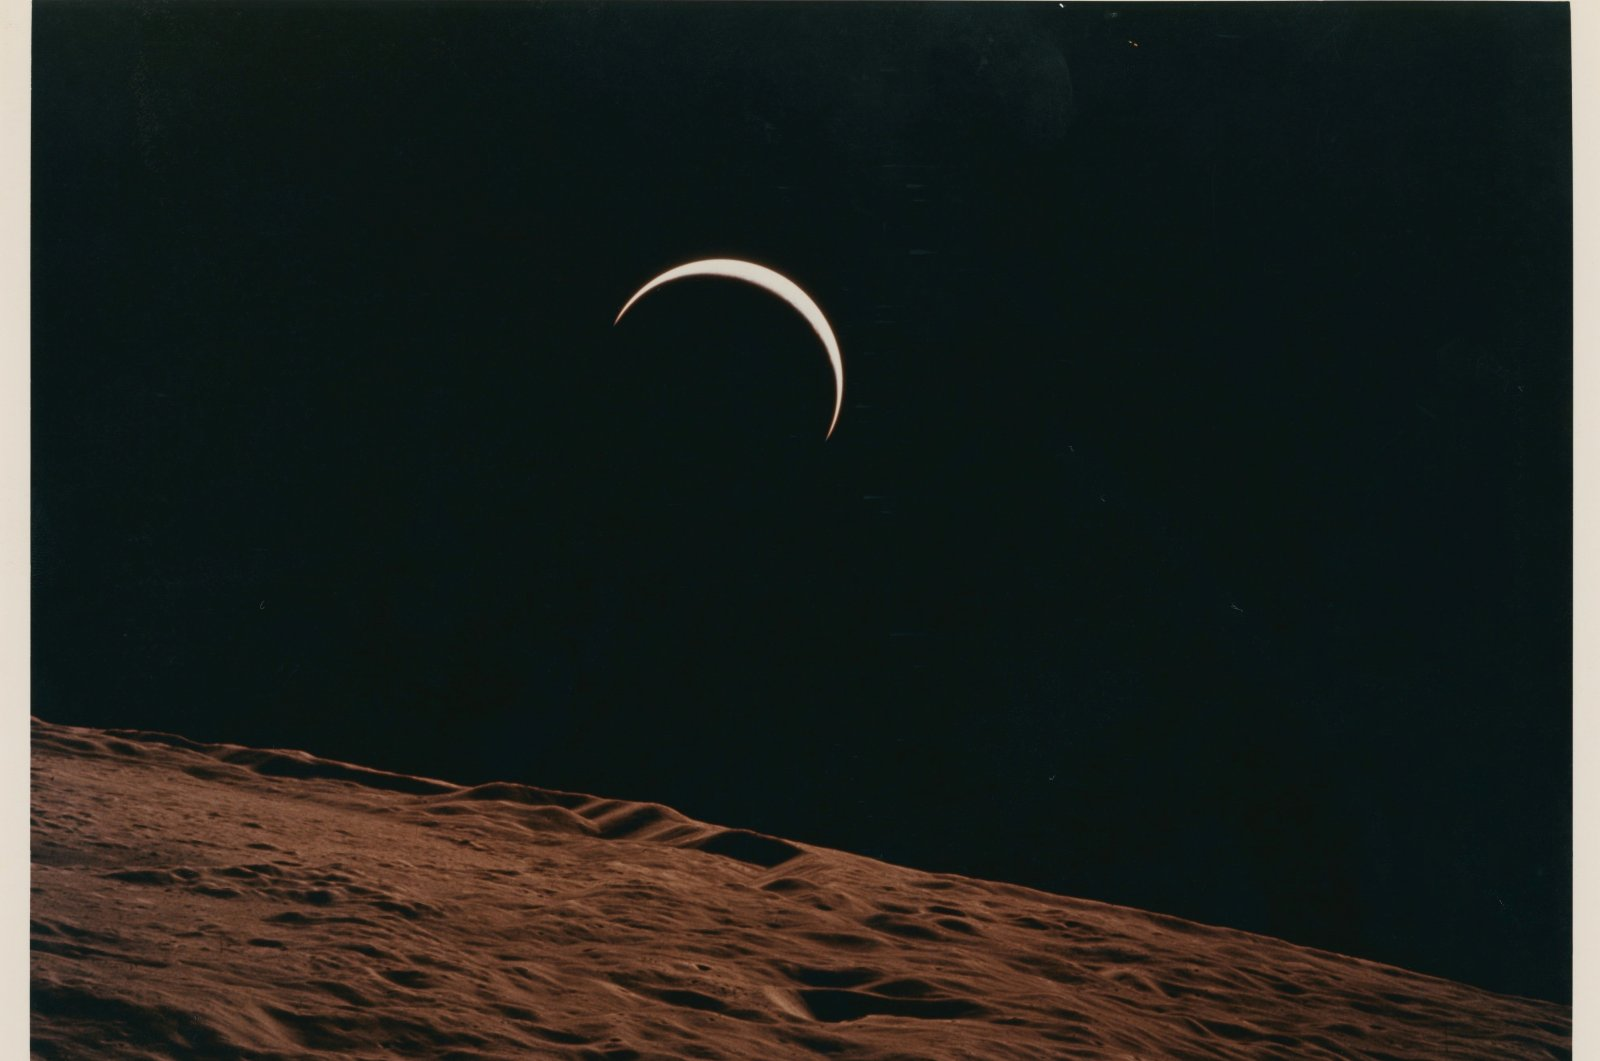 A handout image of Lot 558, Crescent Earth rising beyond the Moon's barren horizon, July 26- August 7, 1971, taken by Apollo 15 crewmember Alfred Worden, one of the space photographs in a collection up for auction at Christie's. (Alfred Worden/Christie's/Handout via REUTERS)